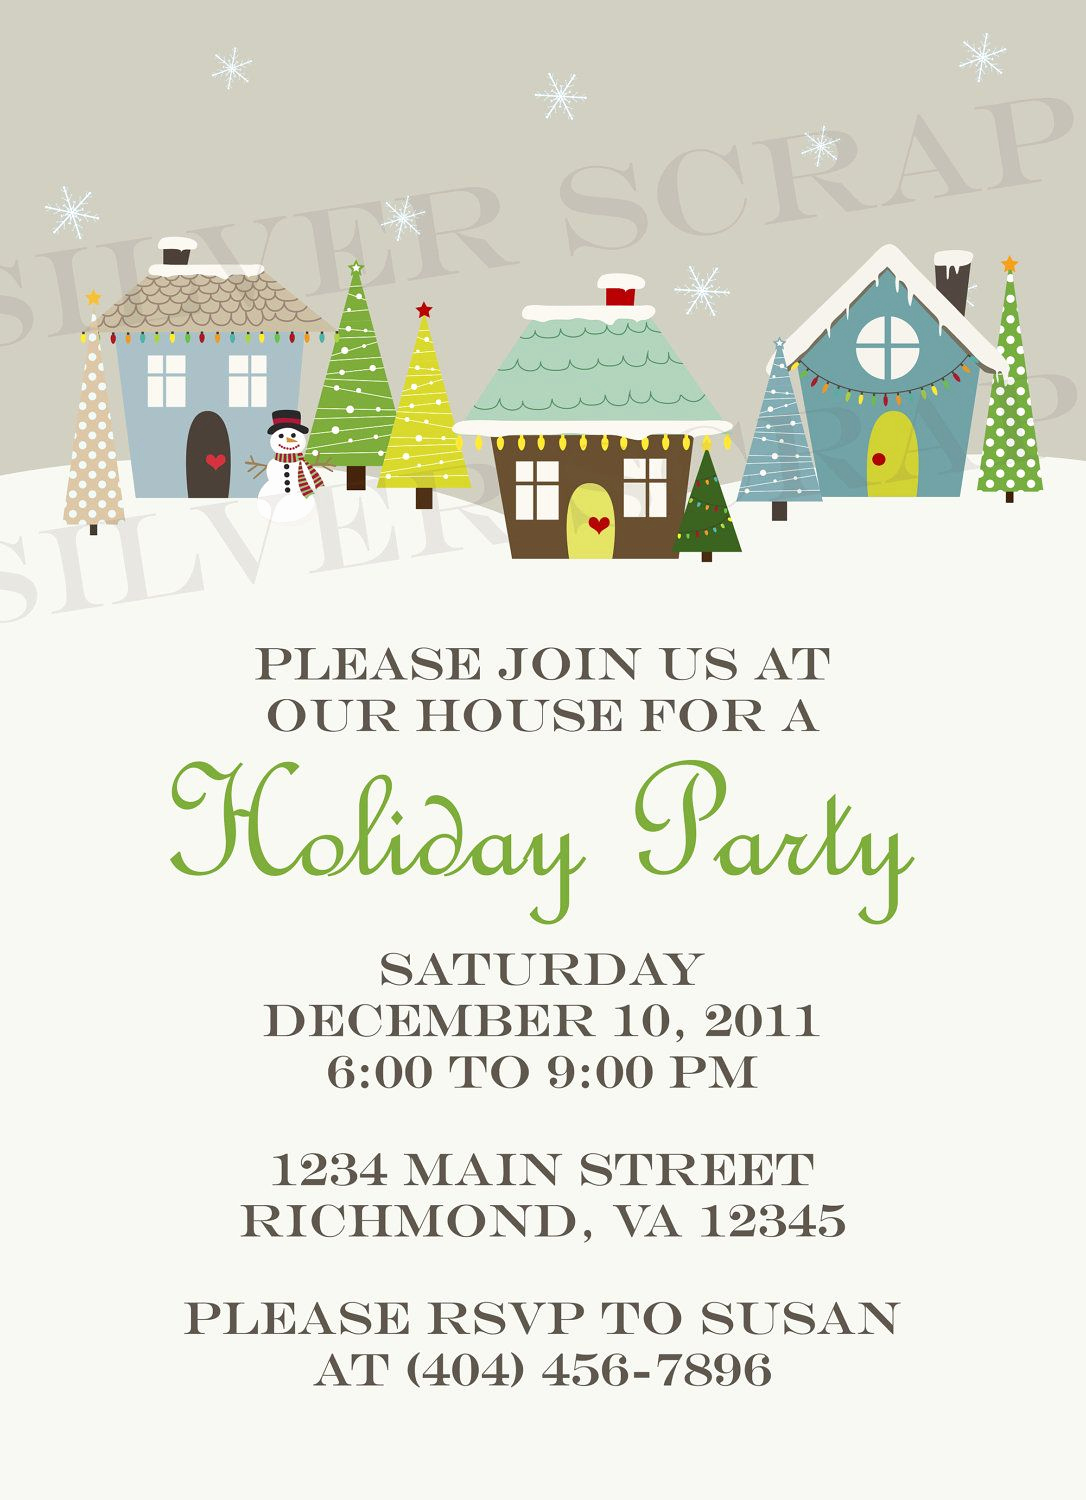 Neighborhood Party Invitation Wording Elegant Custom Holiday Houses Christmas Party Invitation Winter